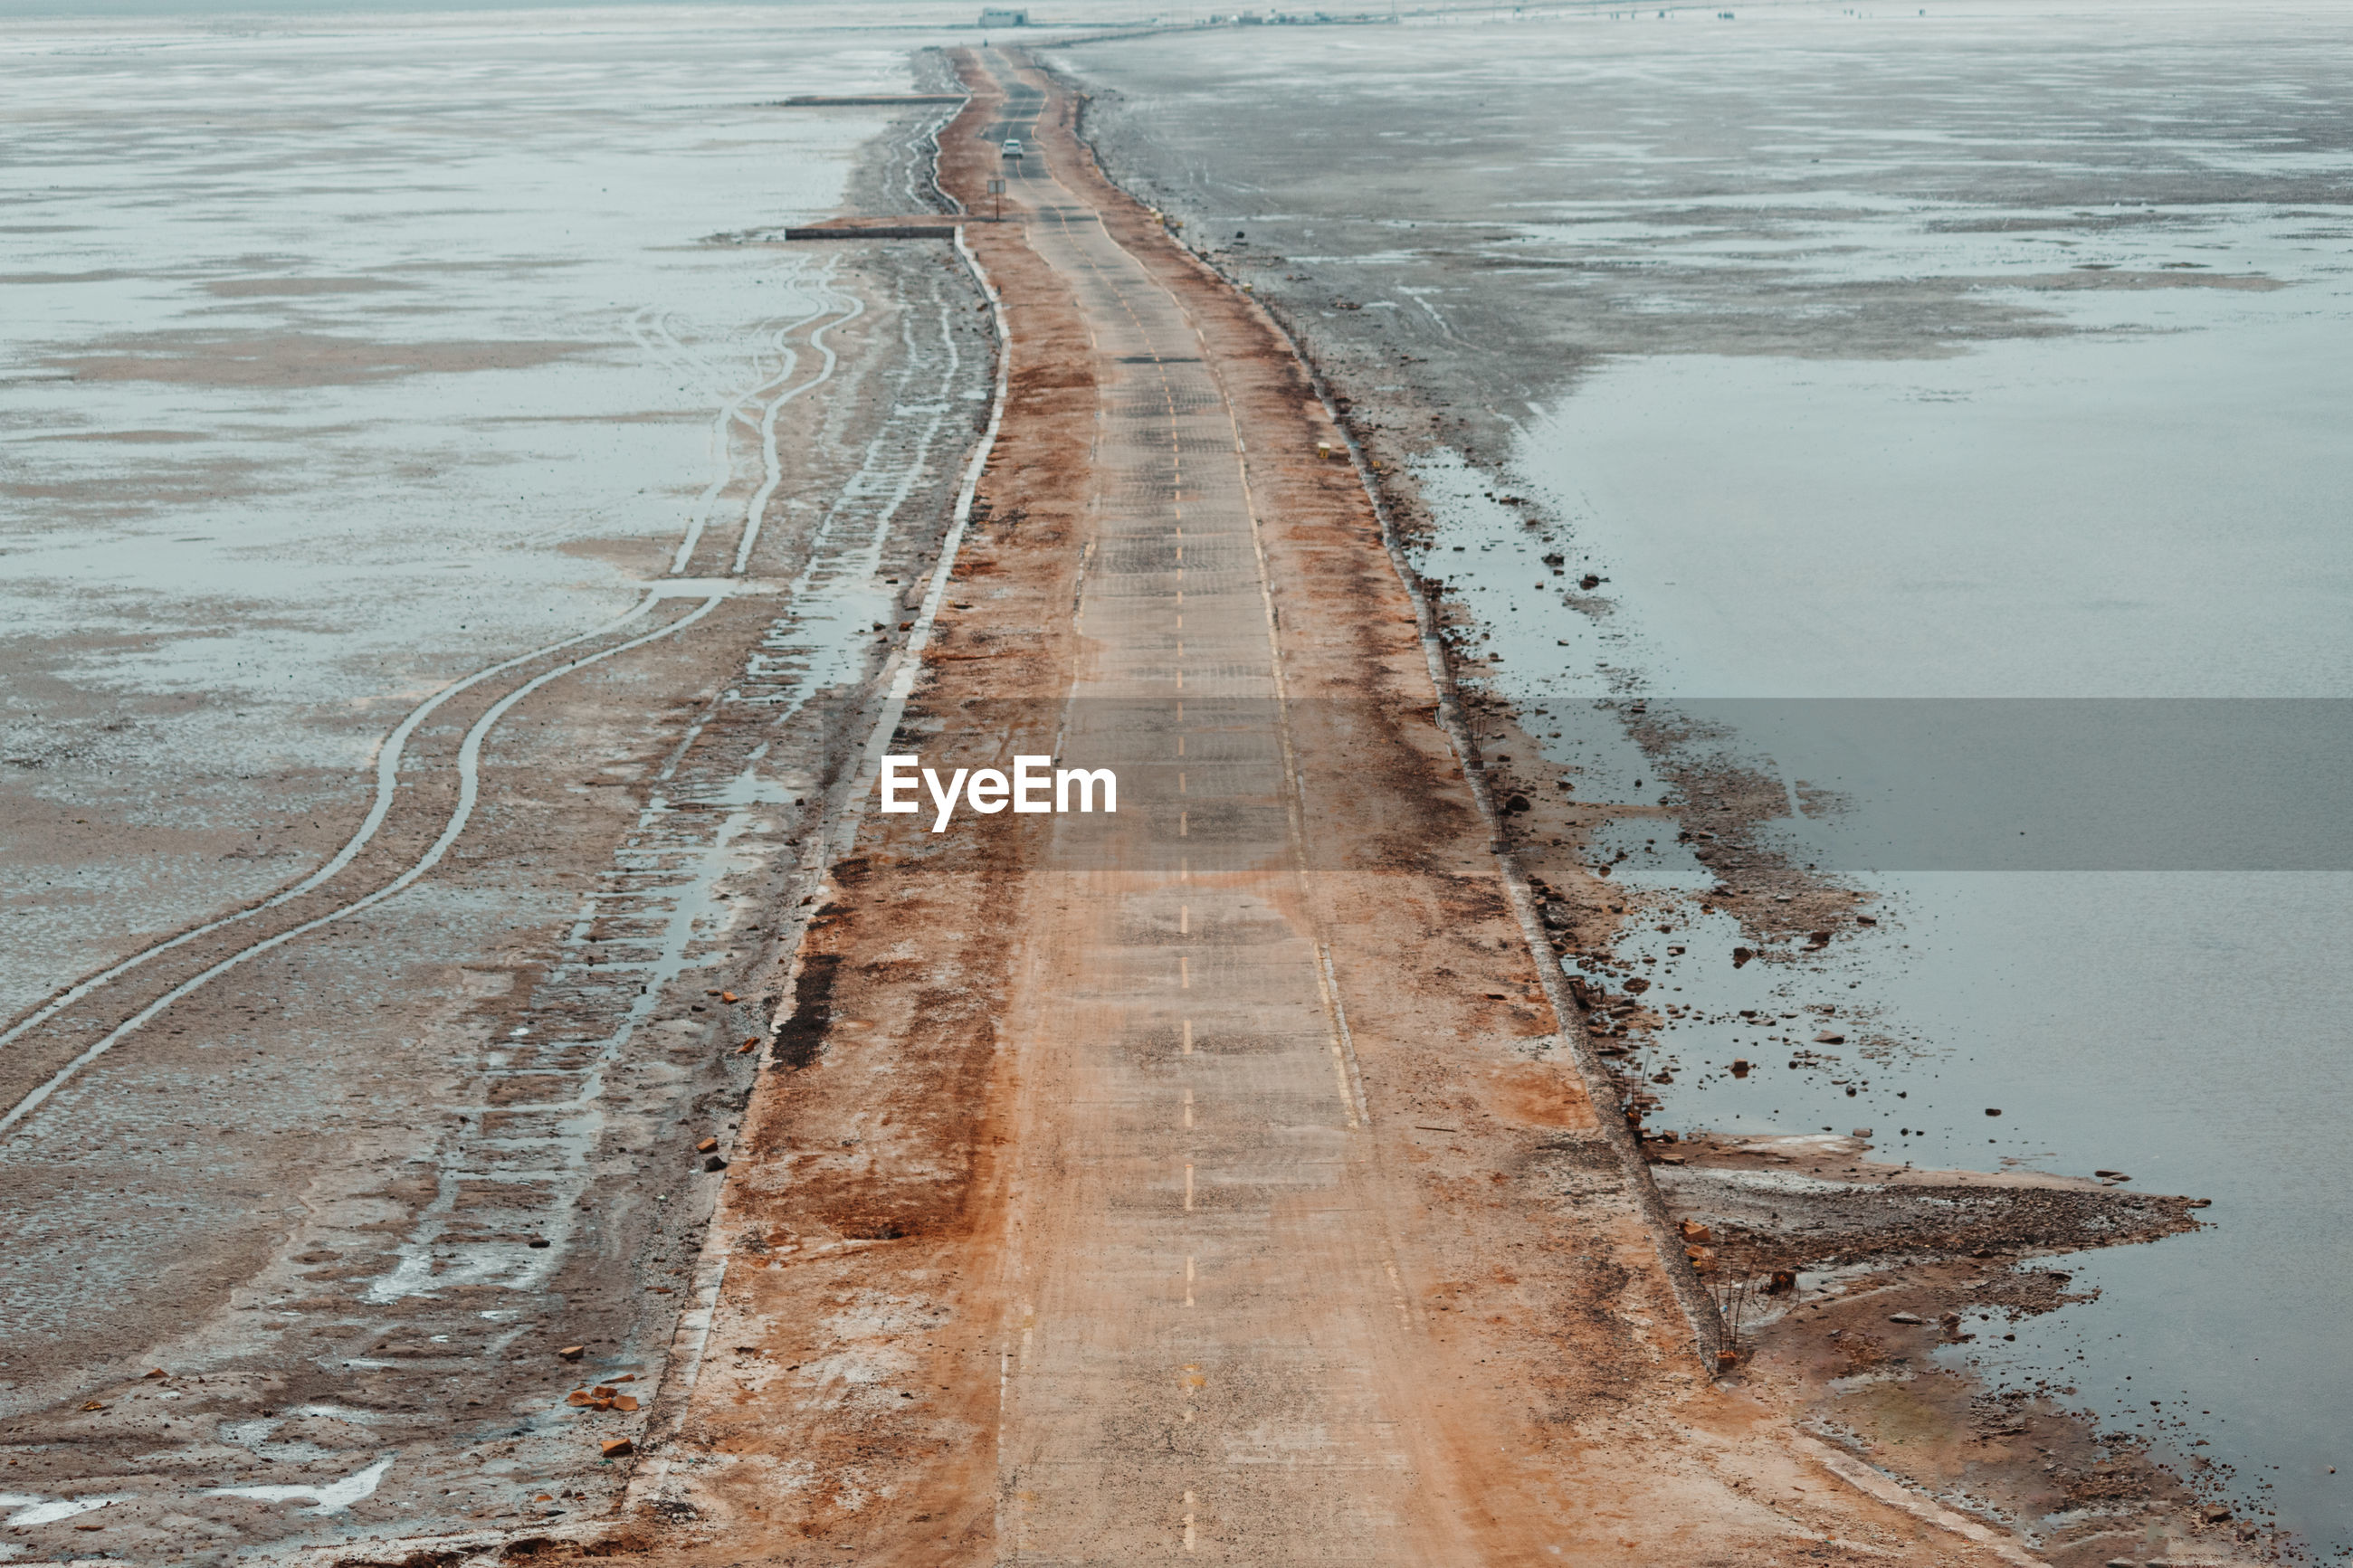 High angle view of wet road